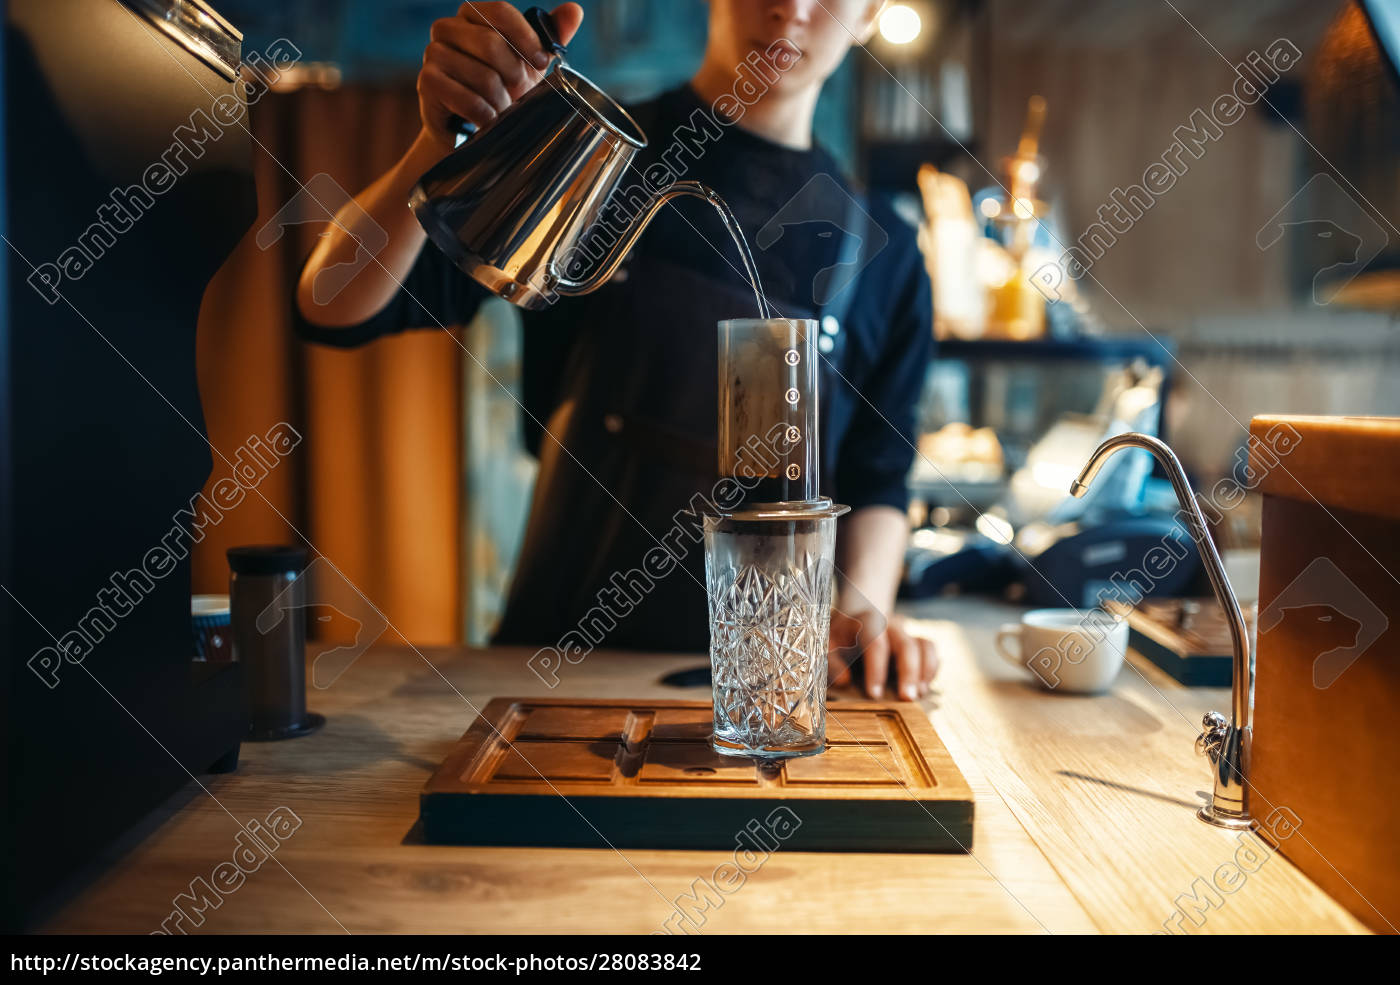 barista, pours, water, from, coffee, pot - 28083842